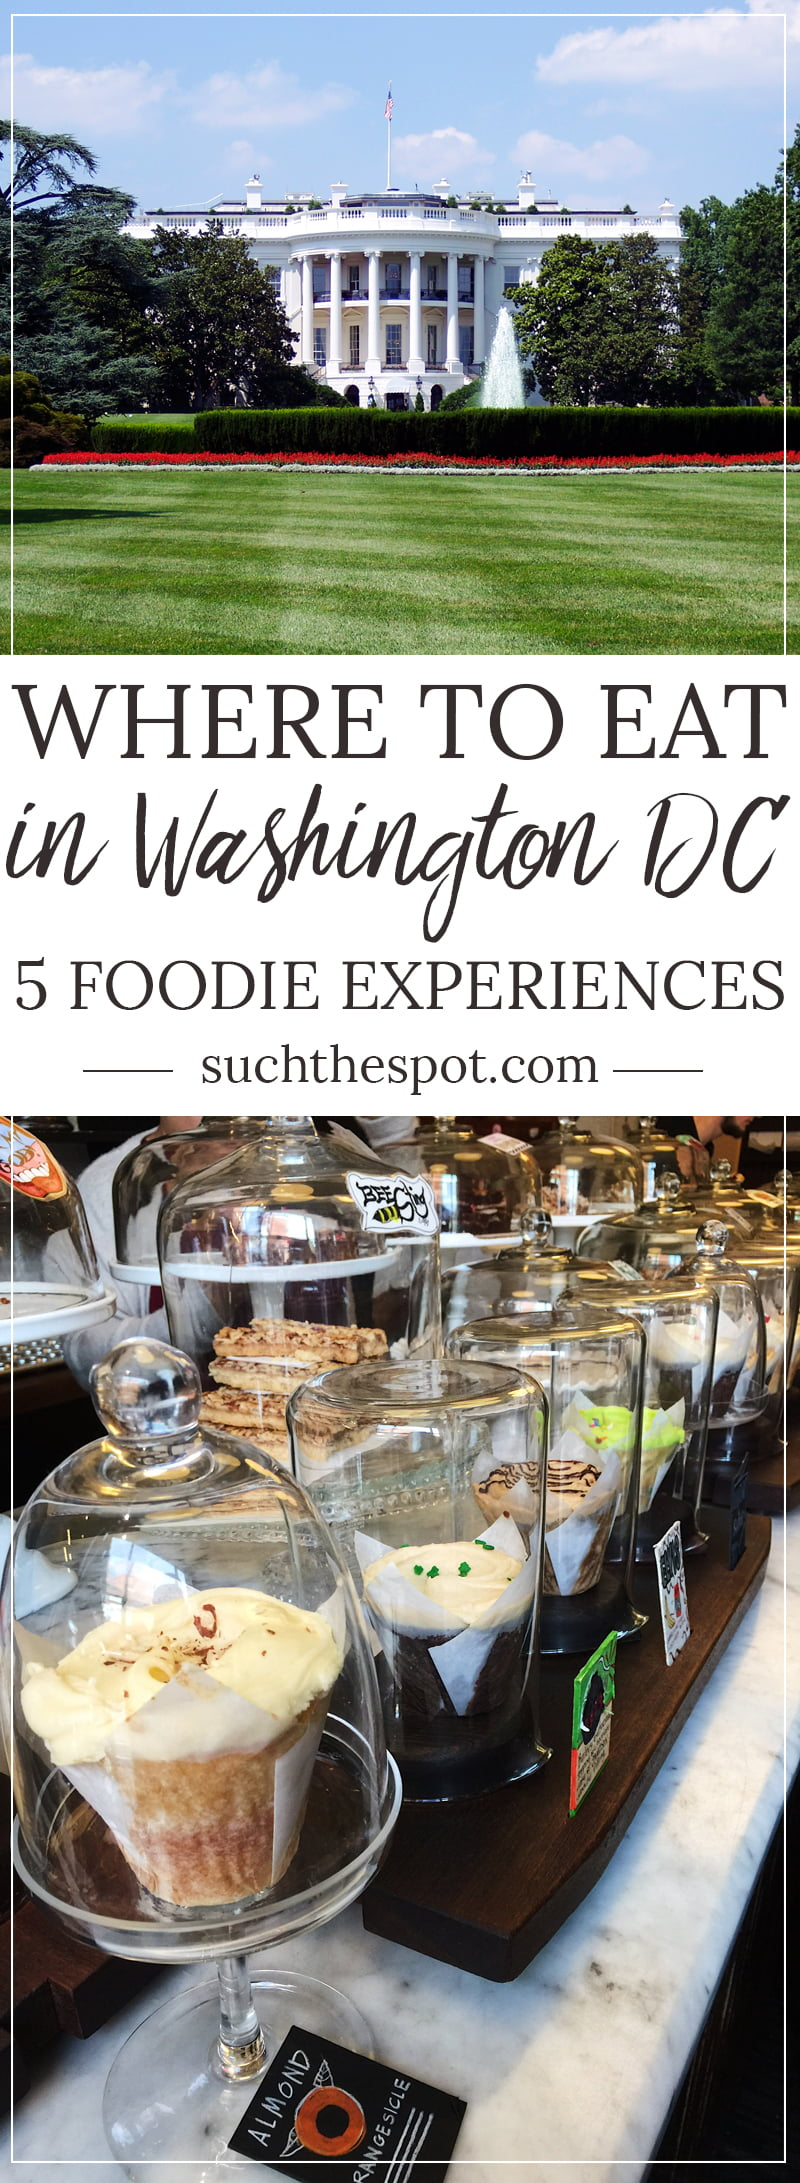 There's more to DC than monuments and museums. These five must-do foodie experiences take you from cocktails to cupcakes in a foodie bucket list that you have to try during your visit to DC.